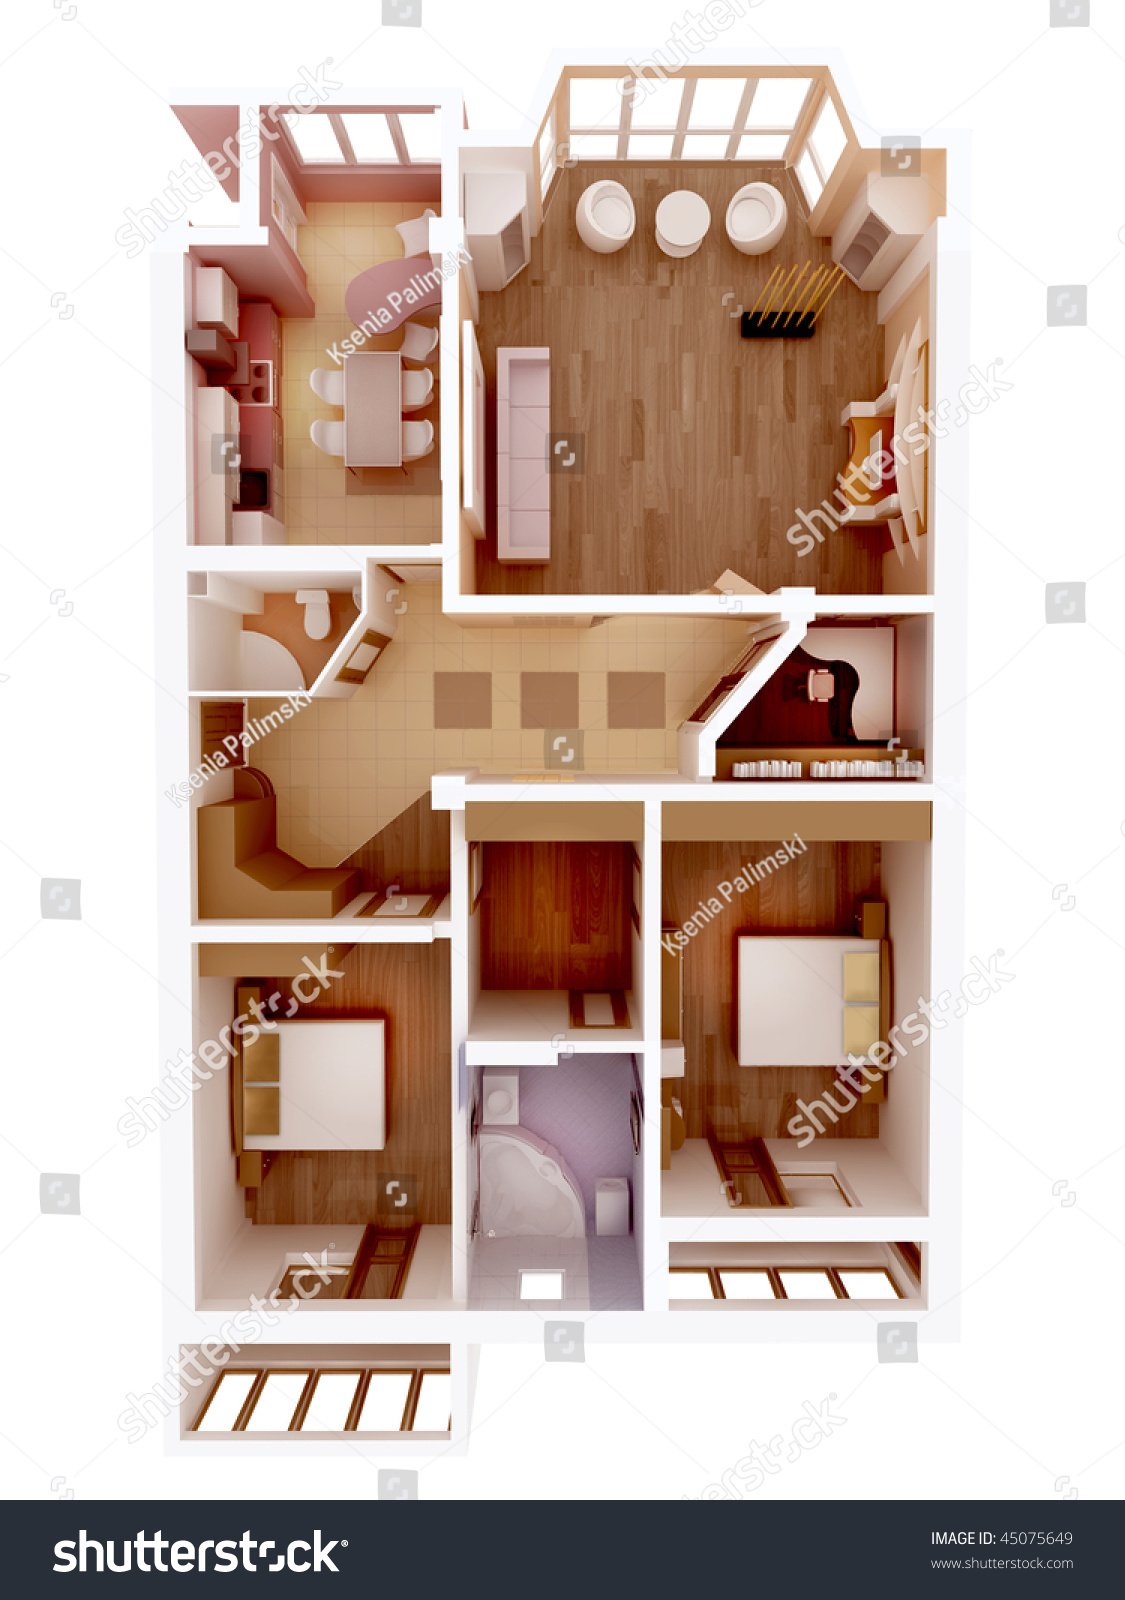 Plan View Apartment Clear 3d Interior Stock Illustration